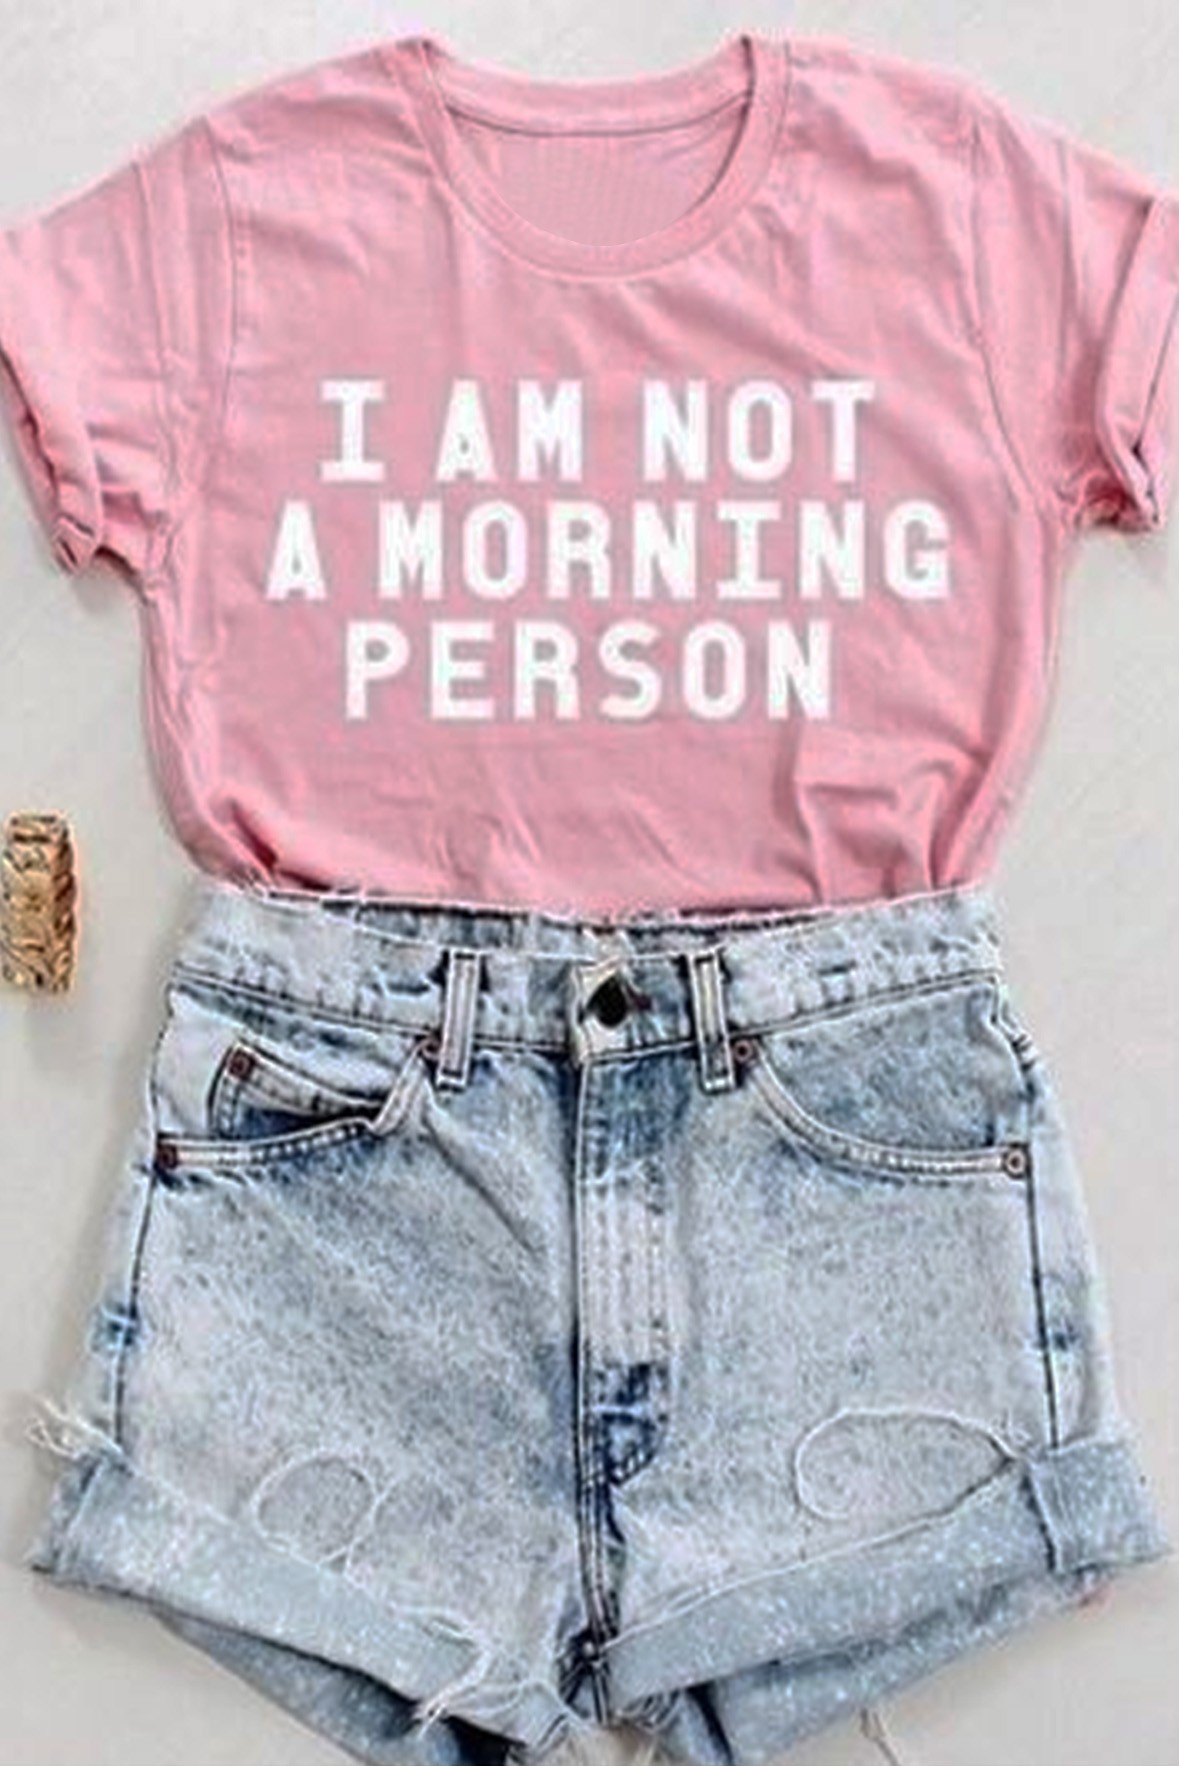 I am not a morning person tee pink